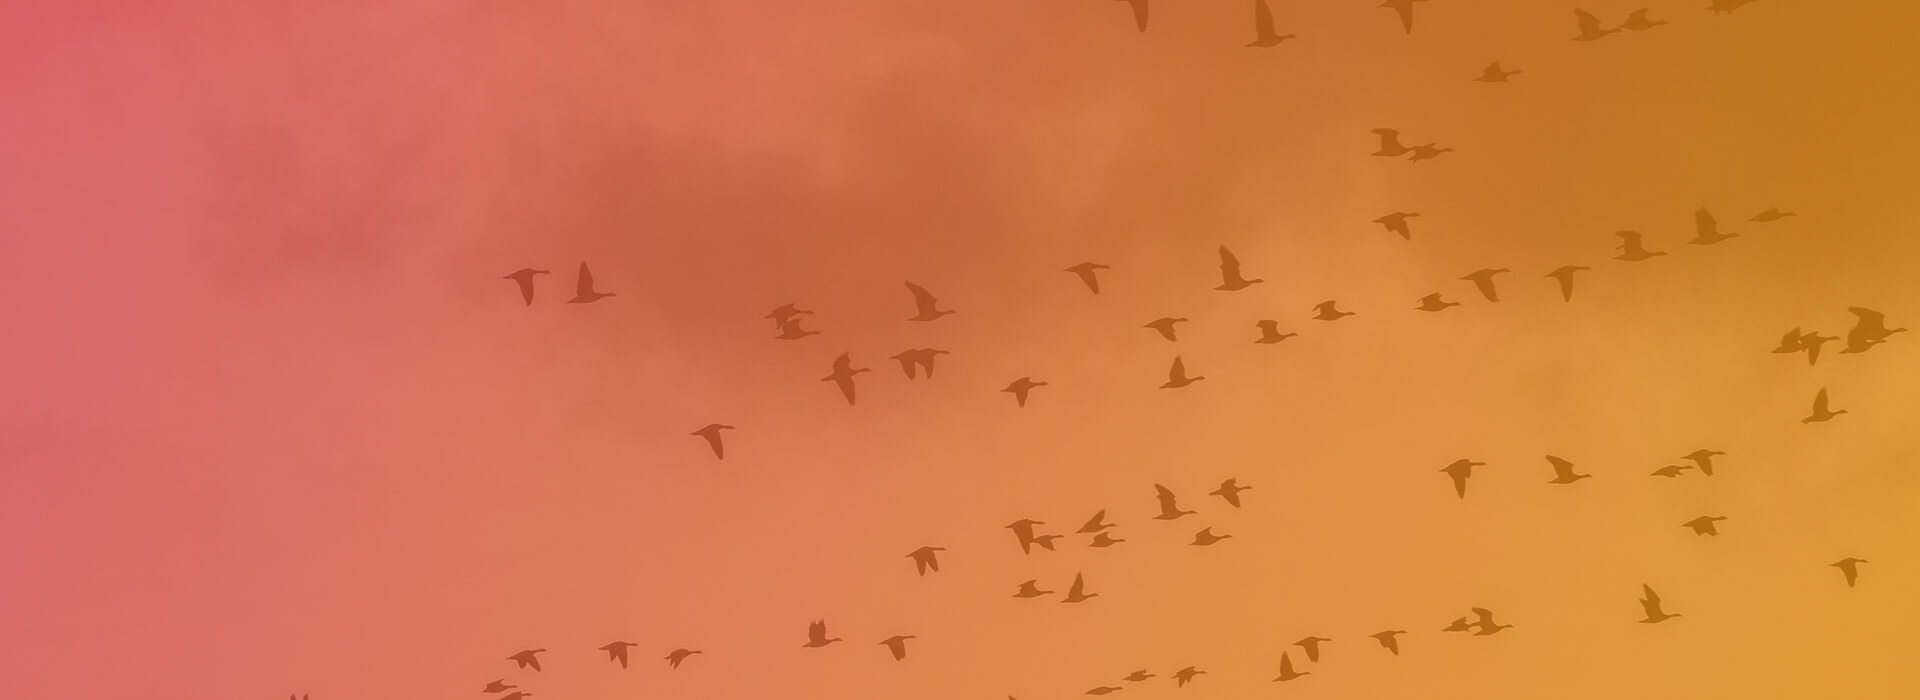 a large flock of birds flying across the sky